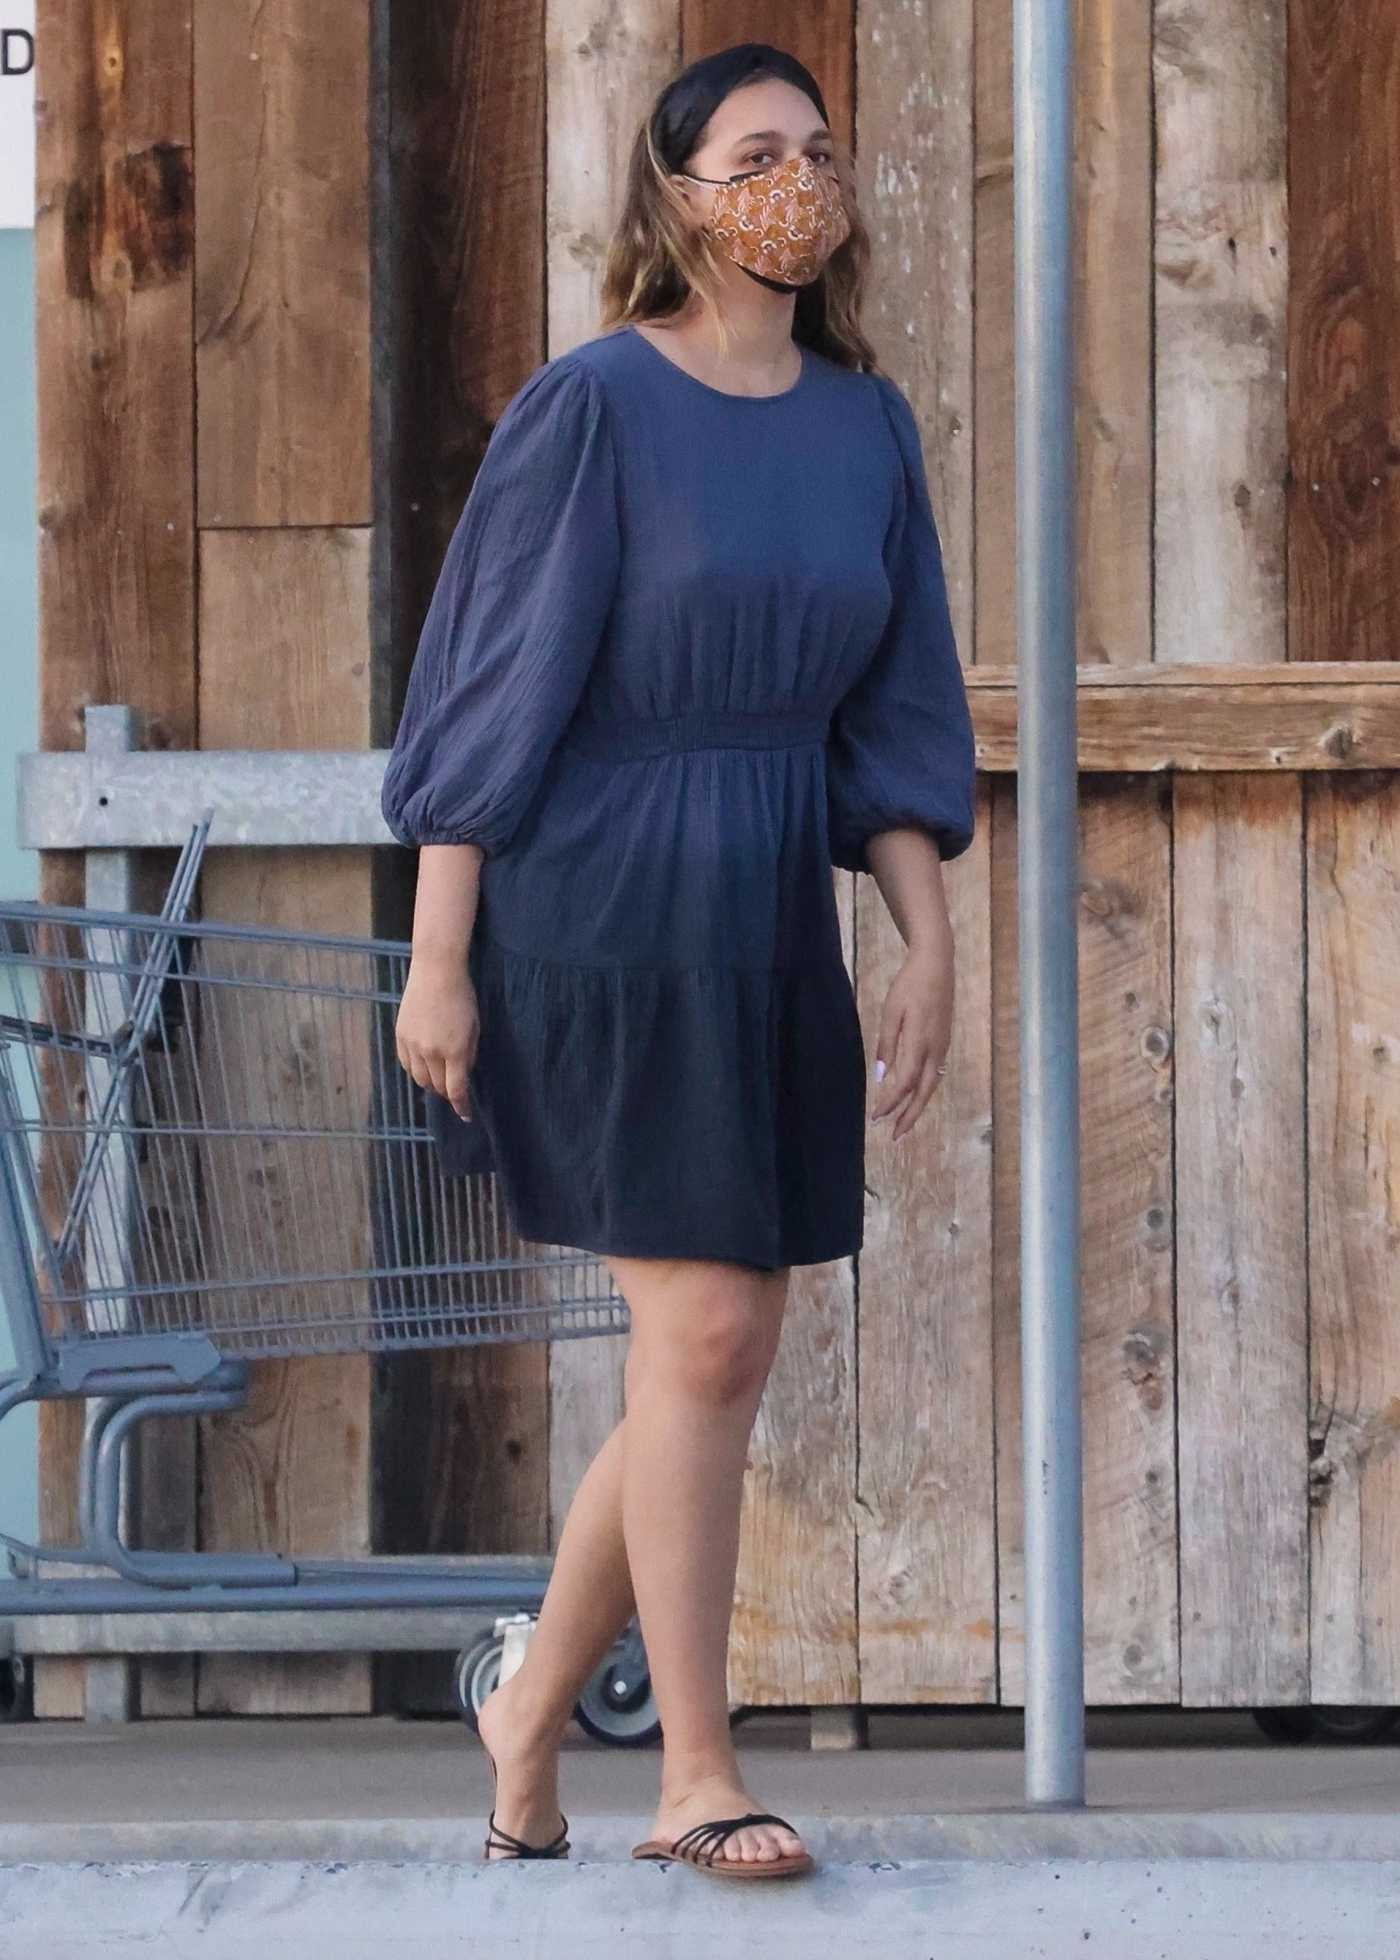 April Love Geary in a Blue Dress Goes Shopping at Vintage Grocers in Malibu 04/07/2021